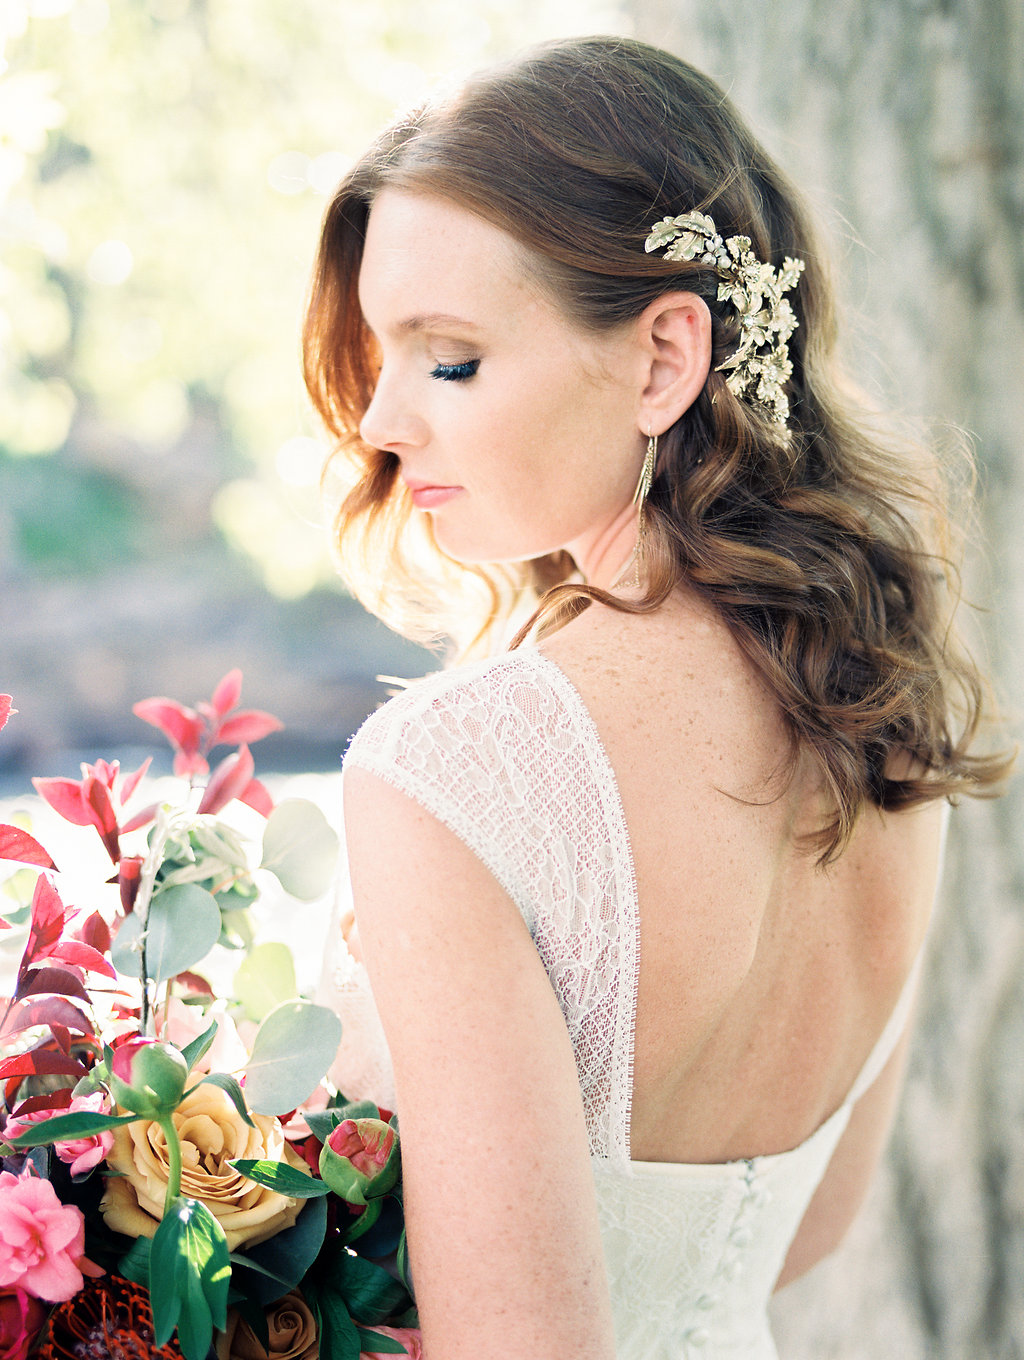 bridal lace and hair accessories - photo by Rachel Havel http://ruffledblog.com/change-of-season-wedding-inspiration-with-earth-tones